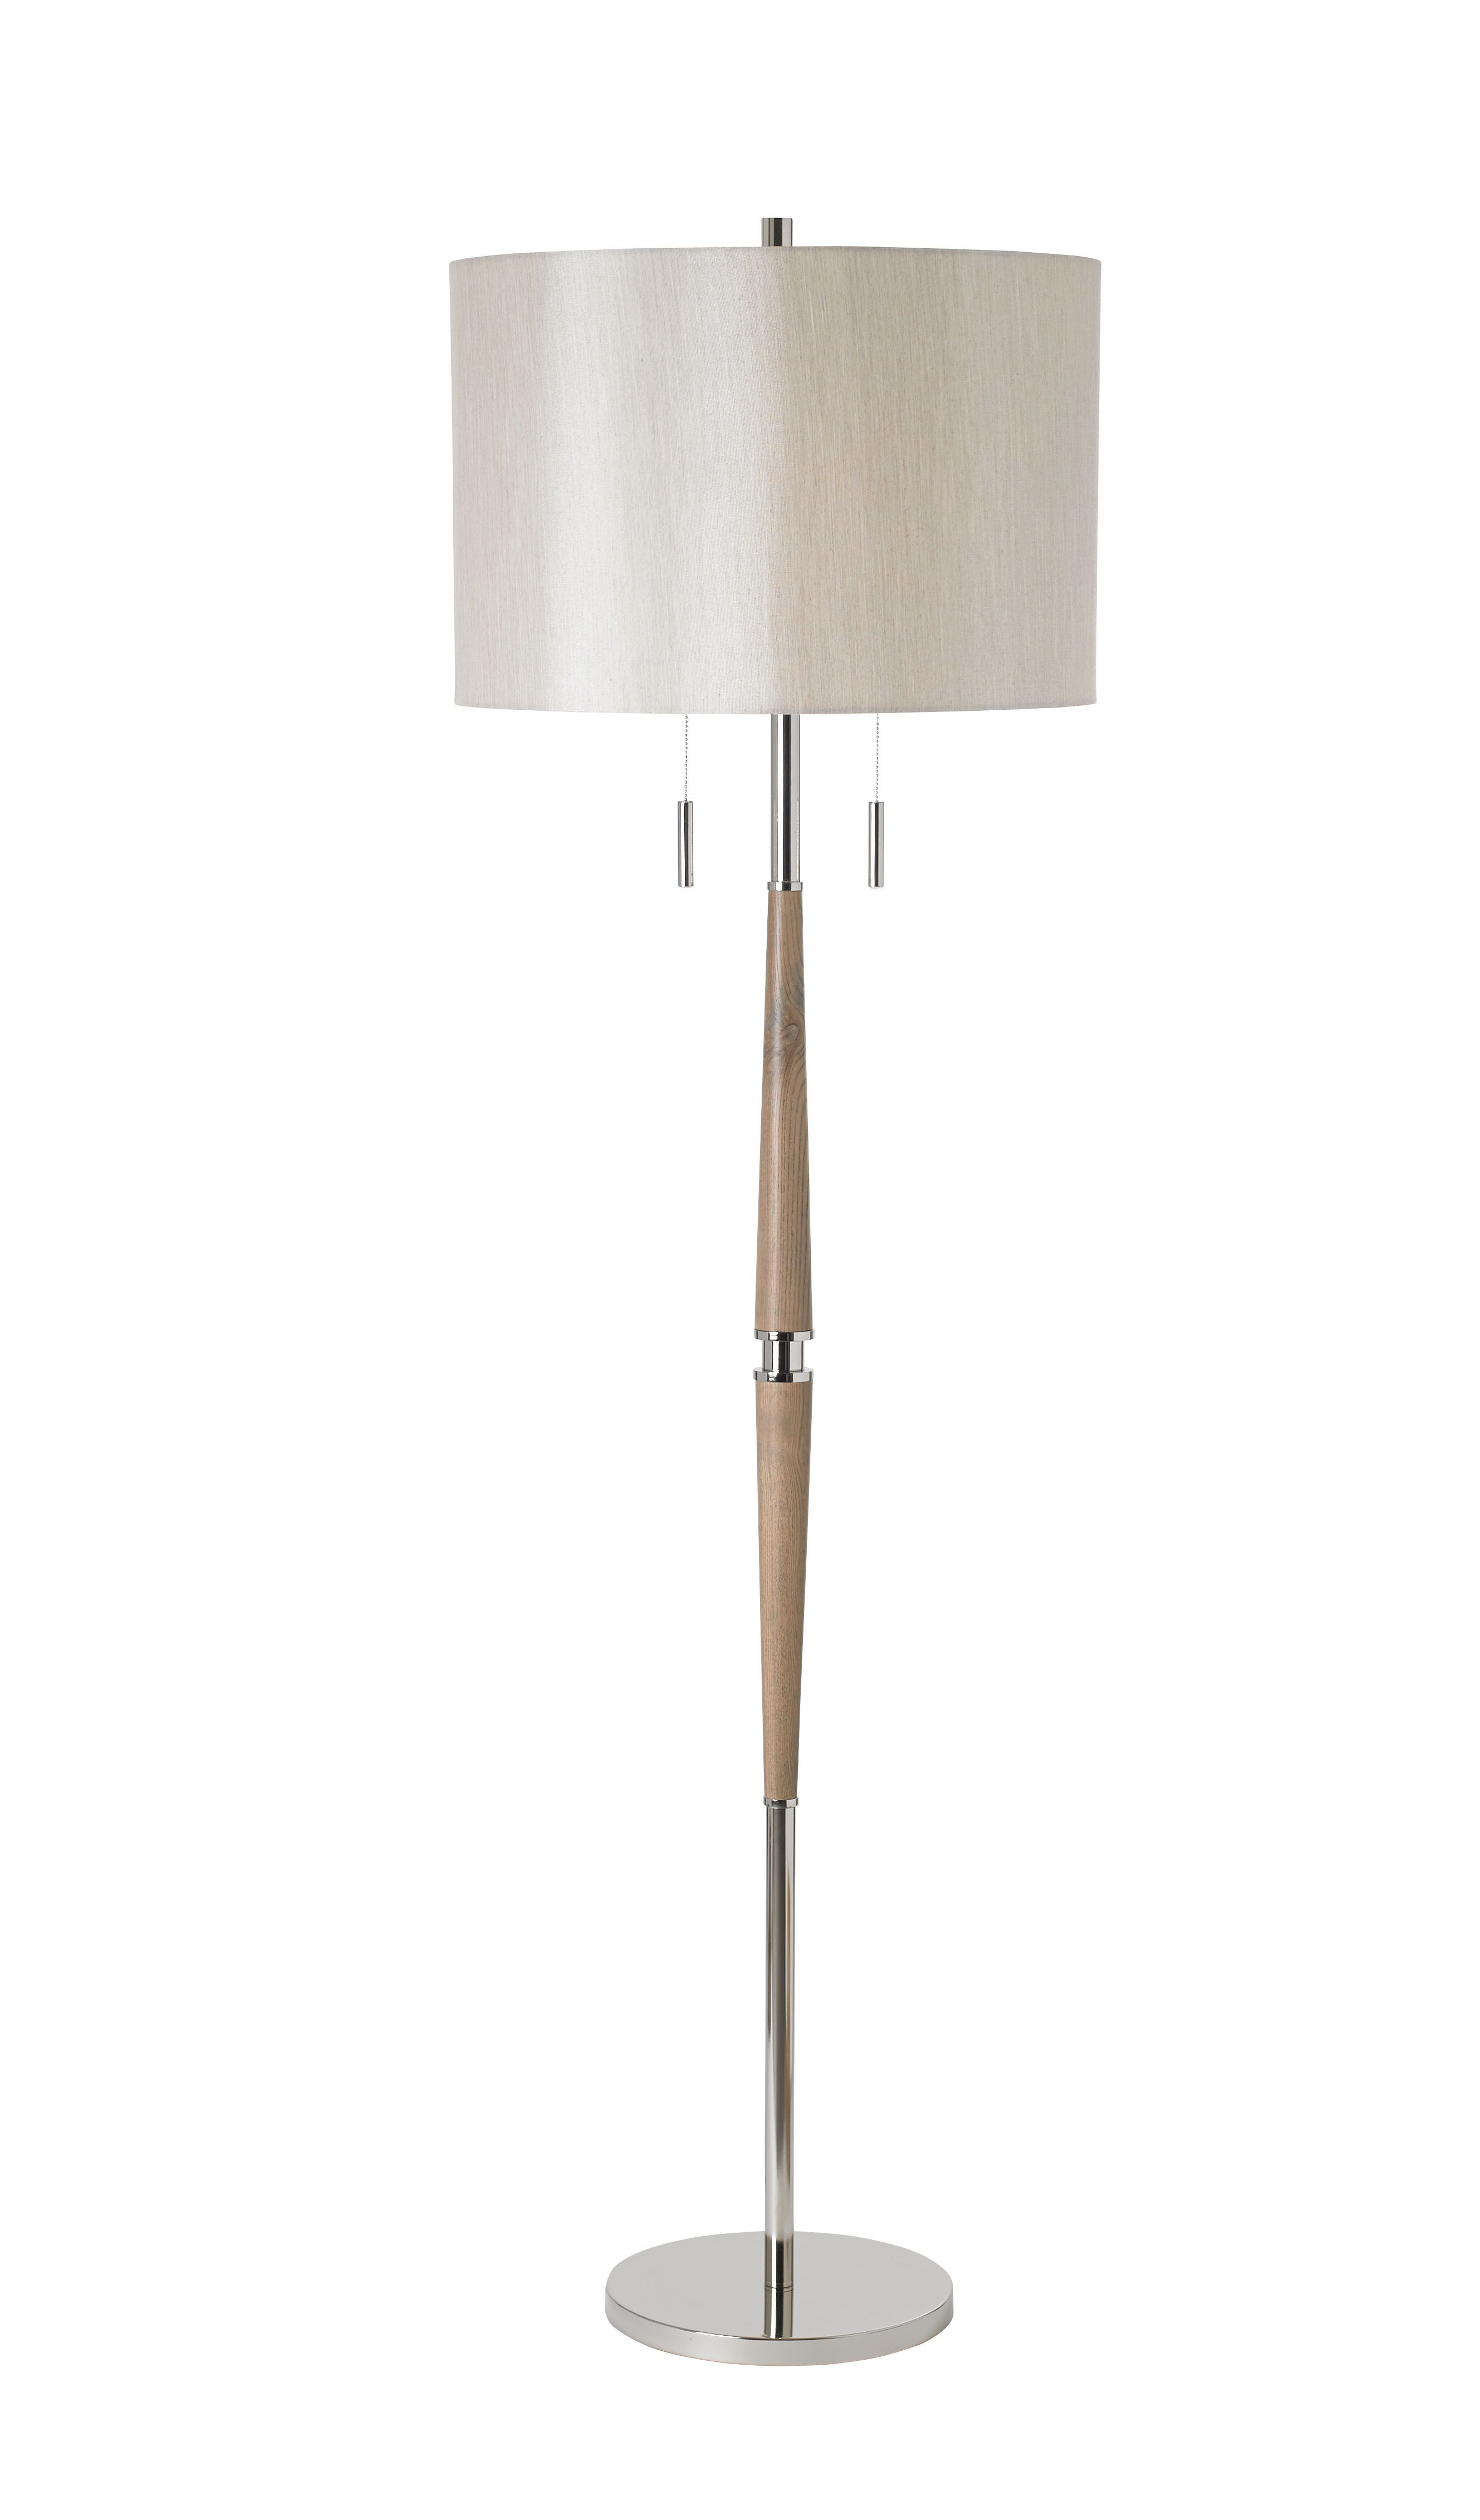 floor lamp in polished nickel and wood with oval shade bxaltesse